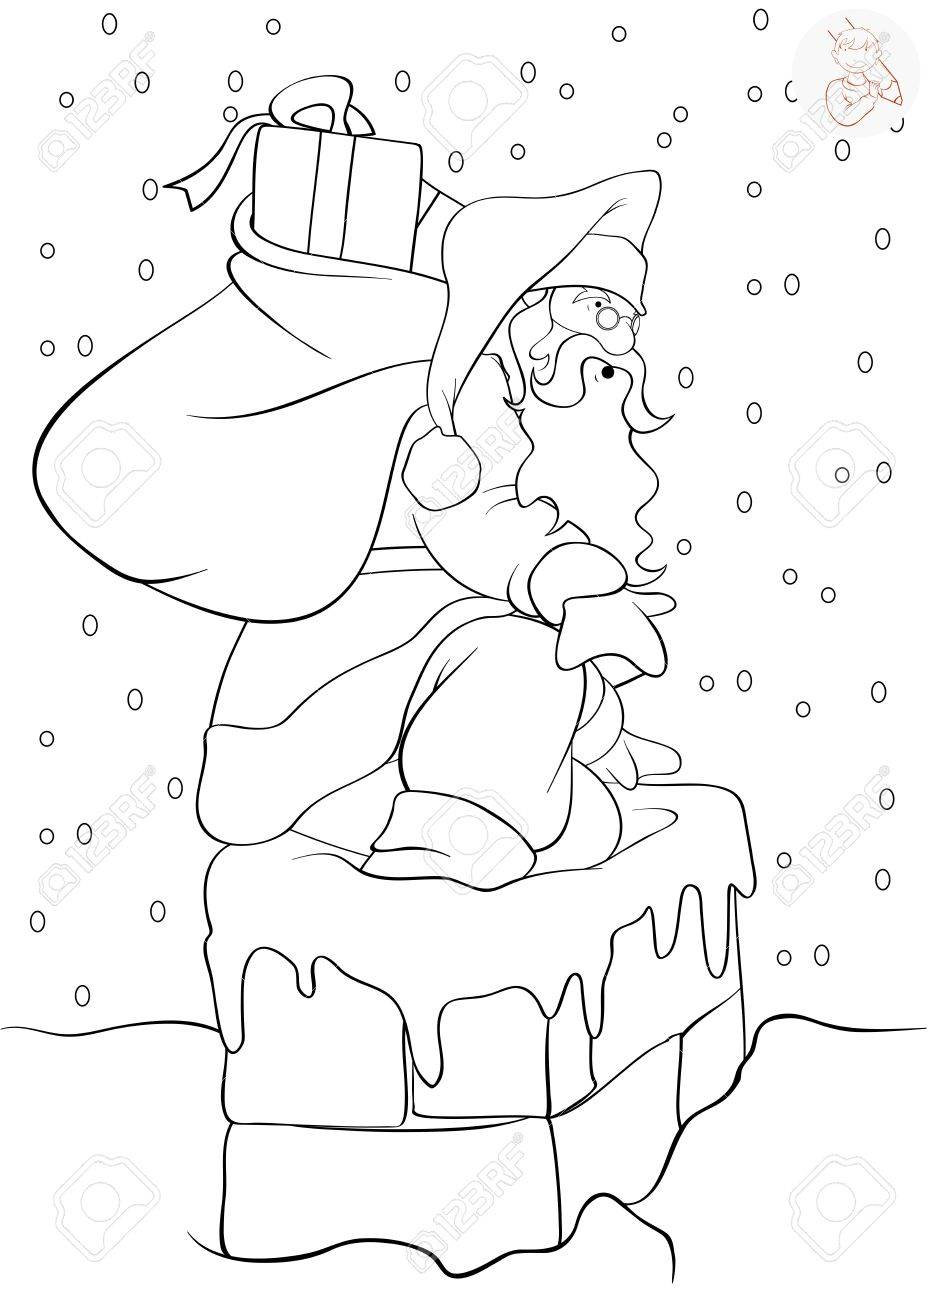 santa claus coming down the chimney with presents coloring